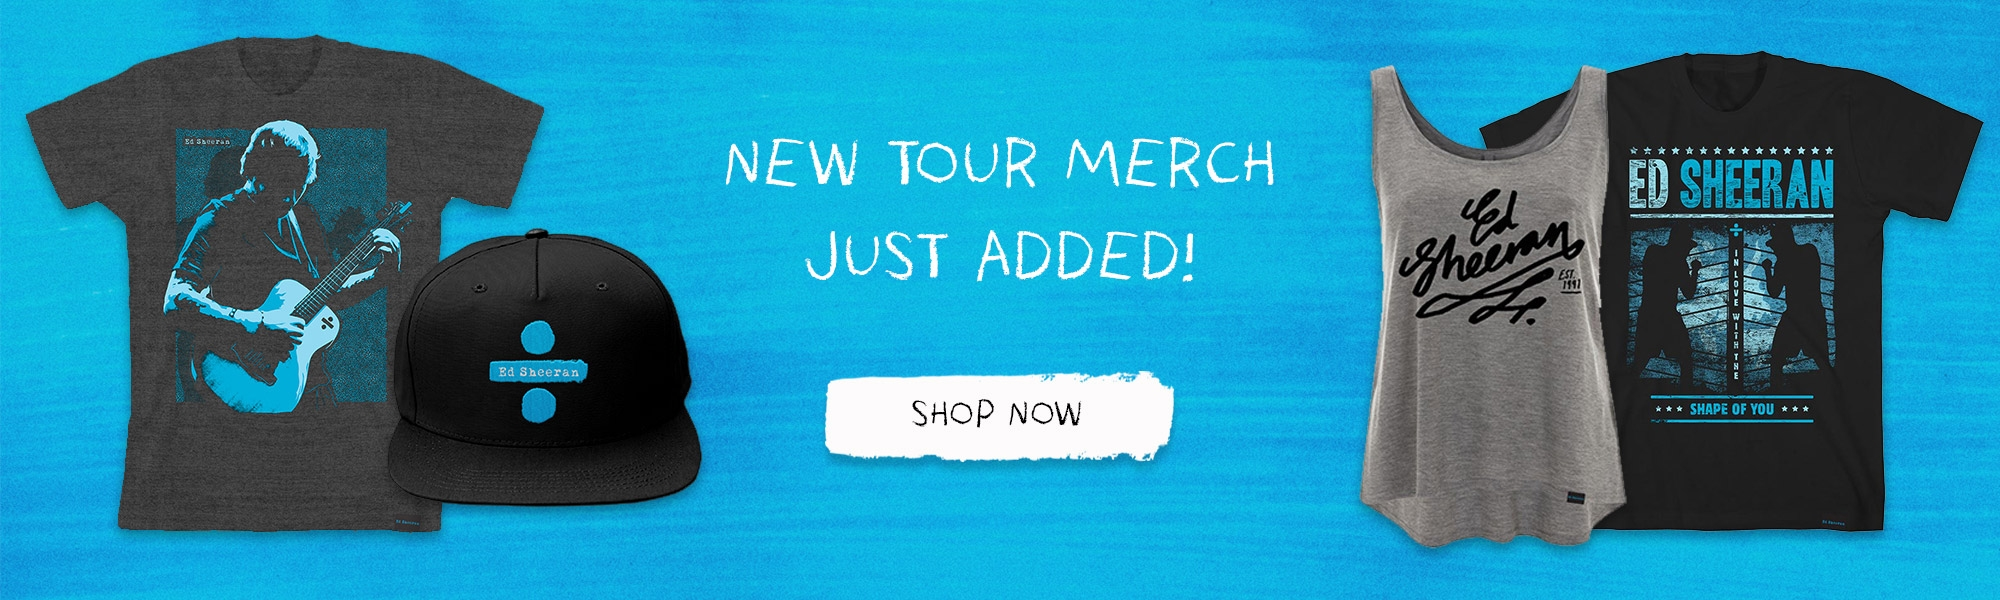 Ed Sheeran - Official Store